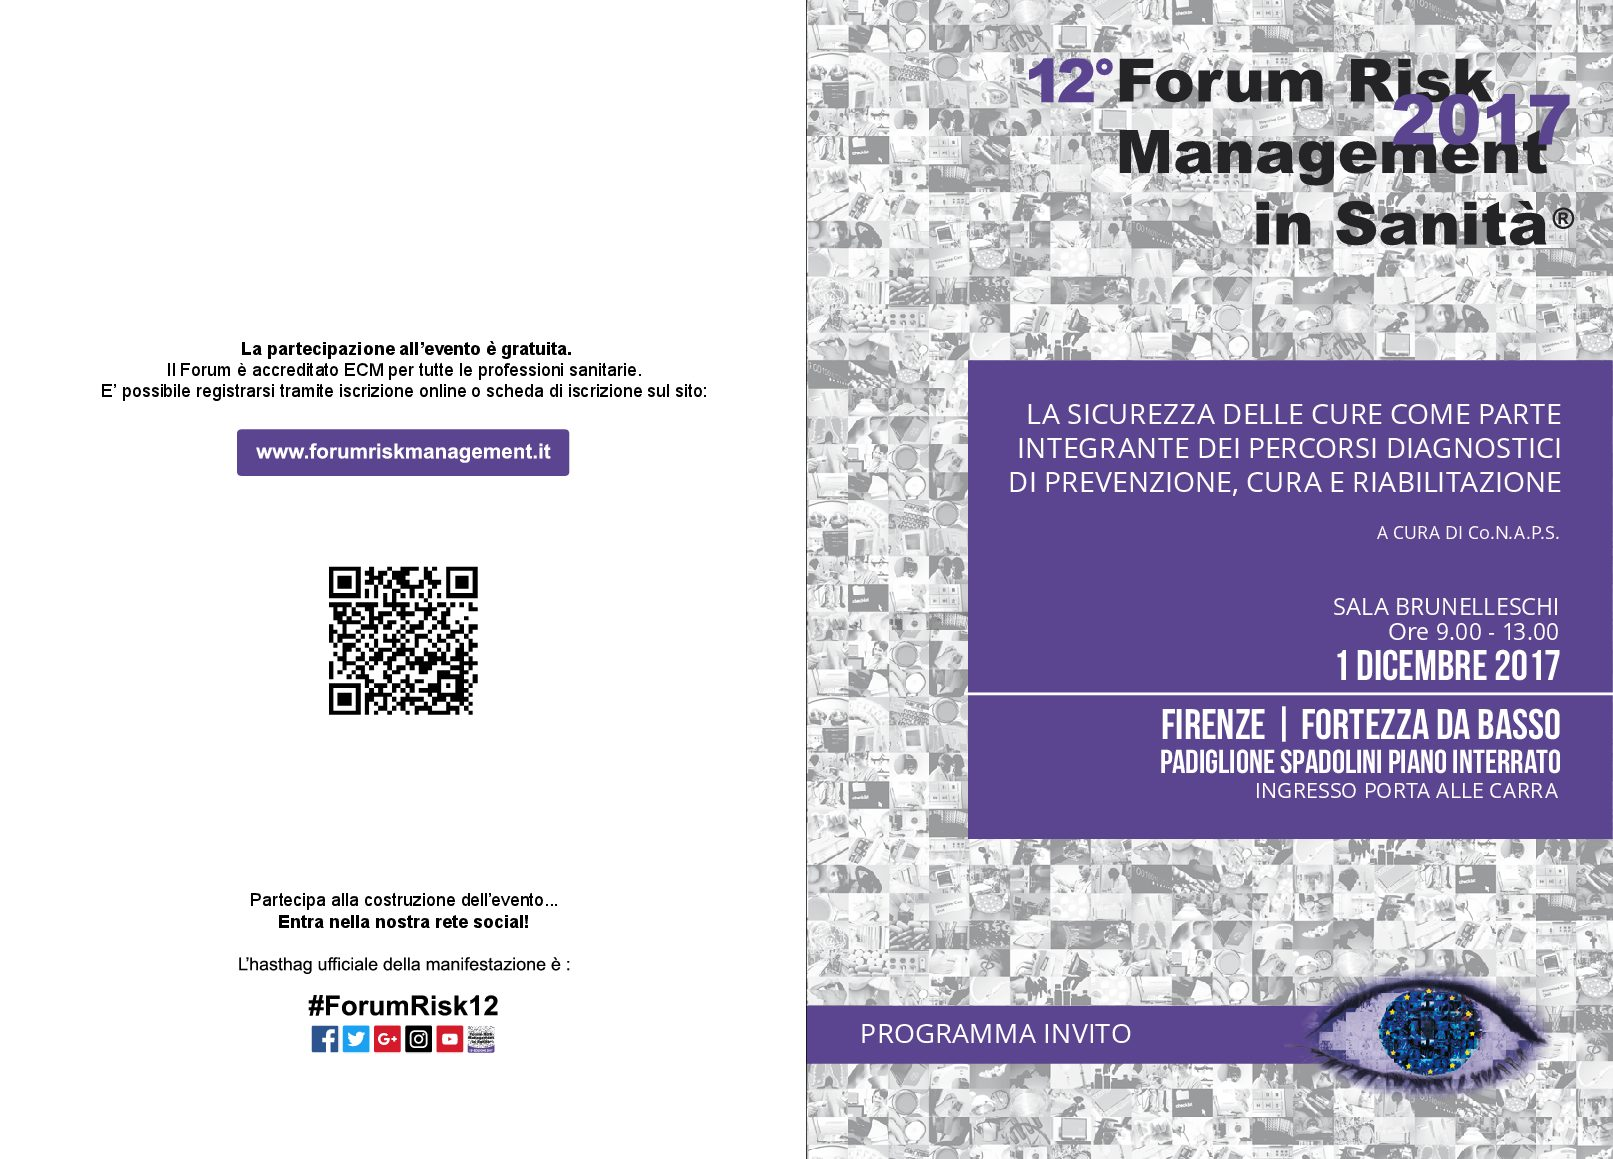 12° Forum Risk Management in Sanità 2017